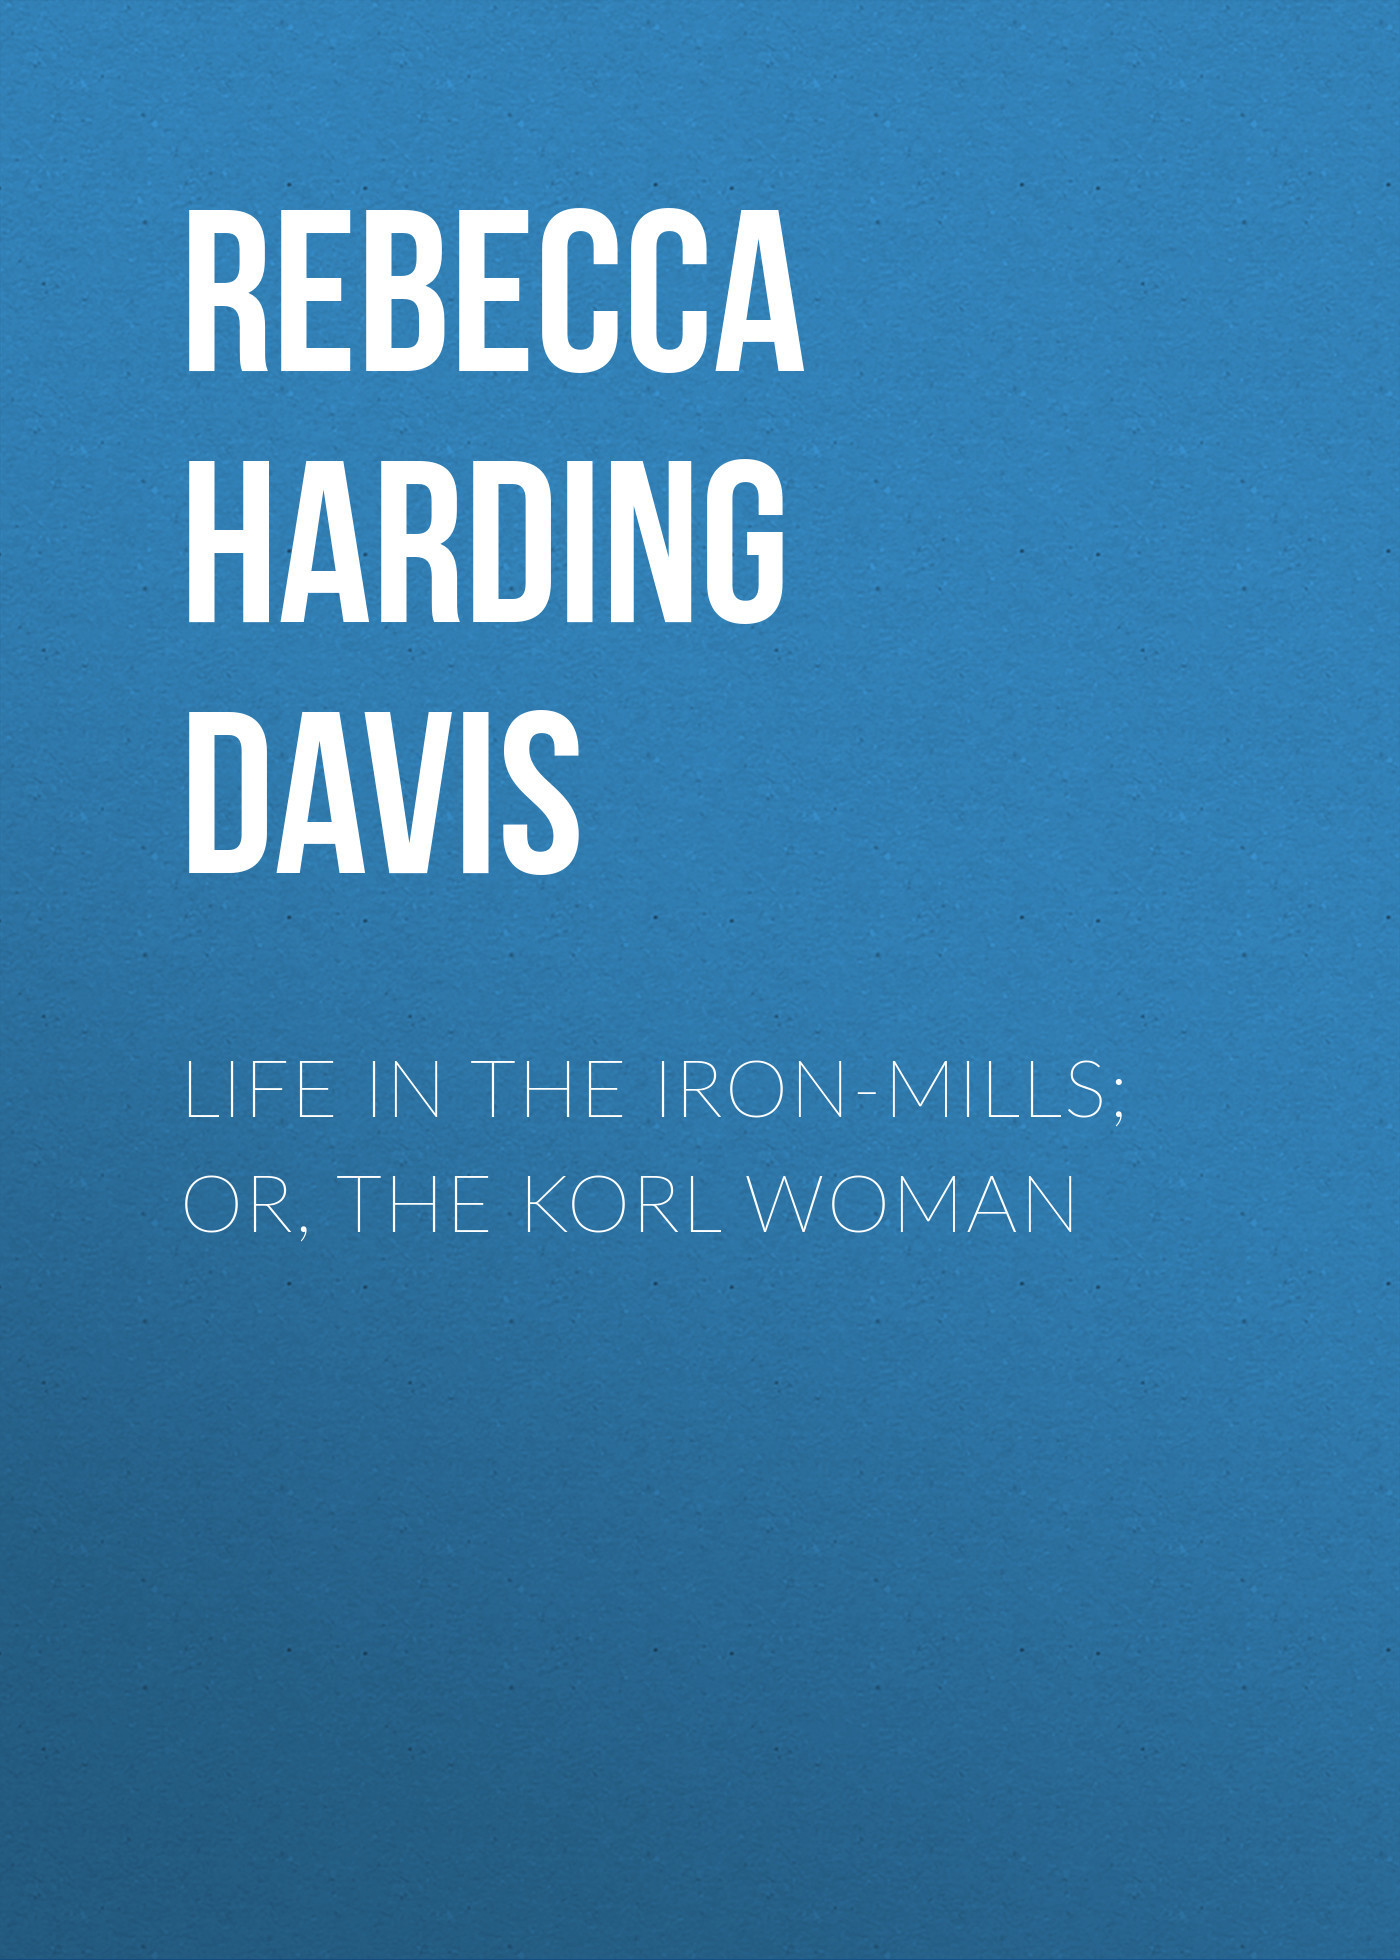 Rebecca Harding Davis Life in the Iron-Mills; Or, The Korl Woman rebecca harding davis life in the iron mills or the korl woman